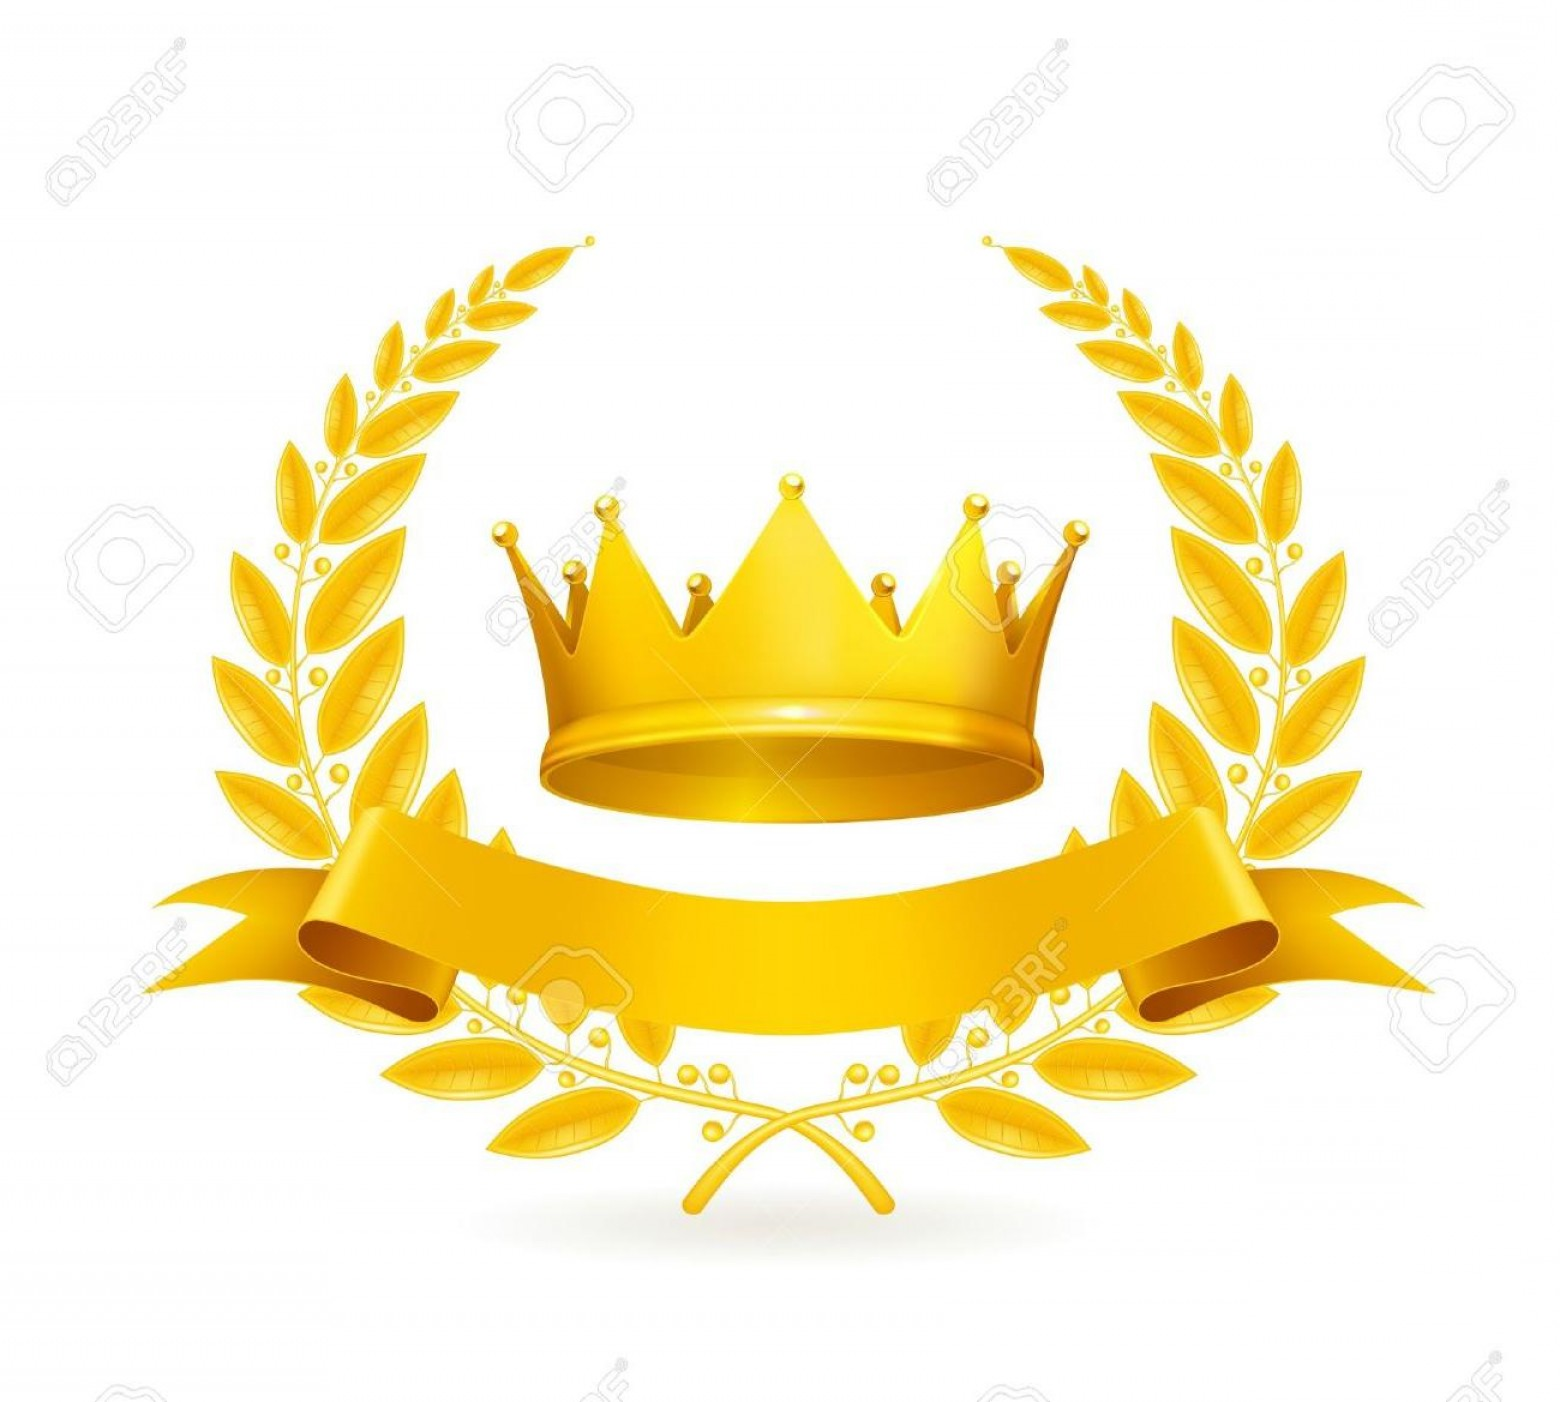 1560x1402 Unique Golden Crown Vector File Free Shopatcloth